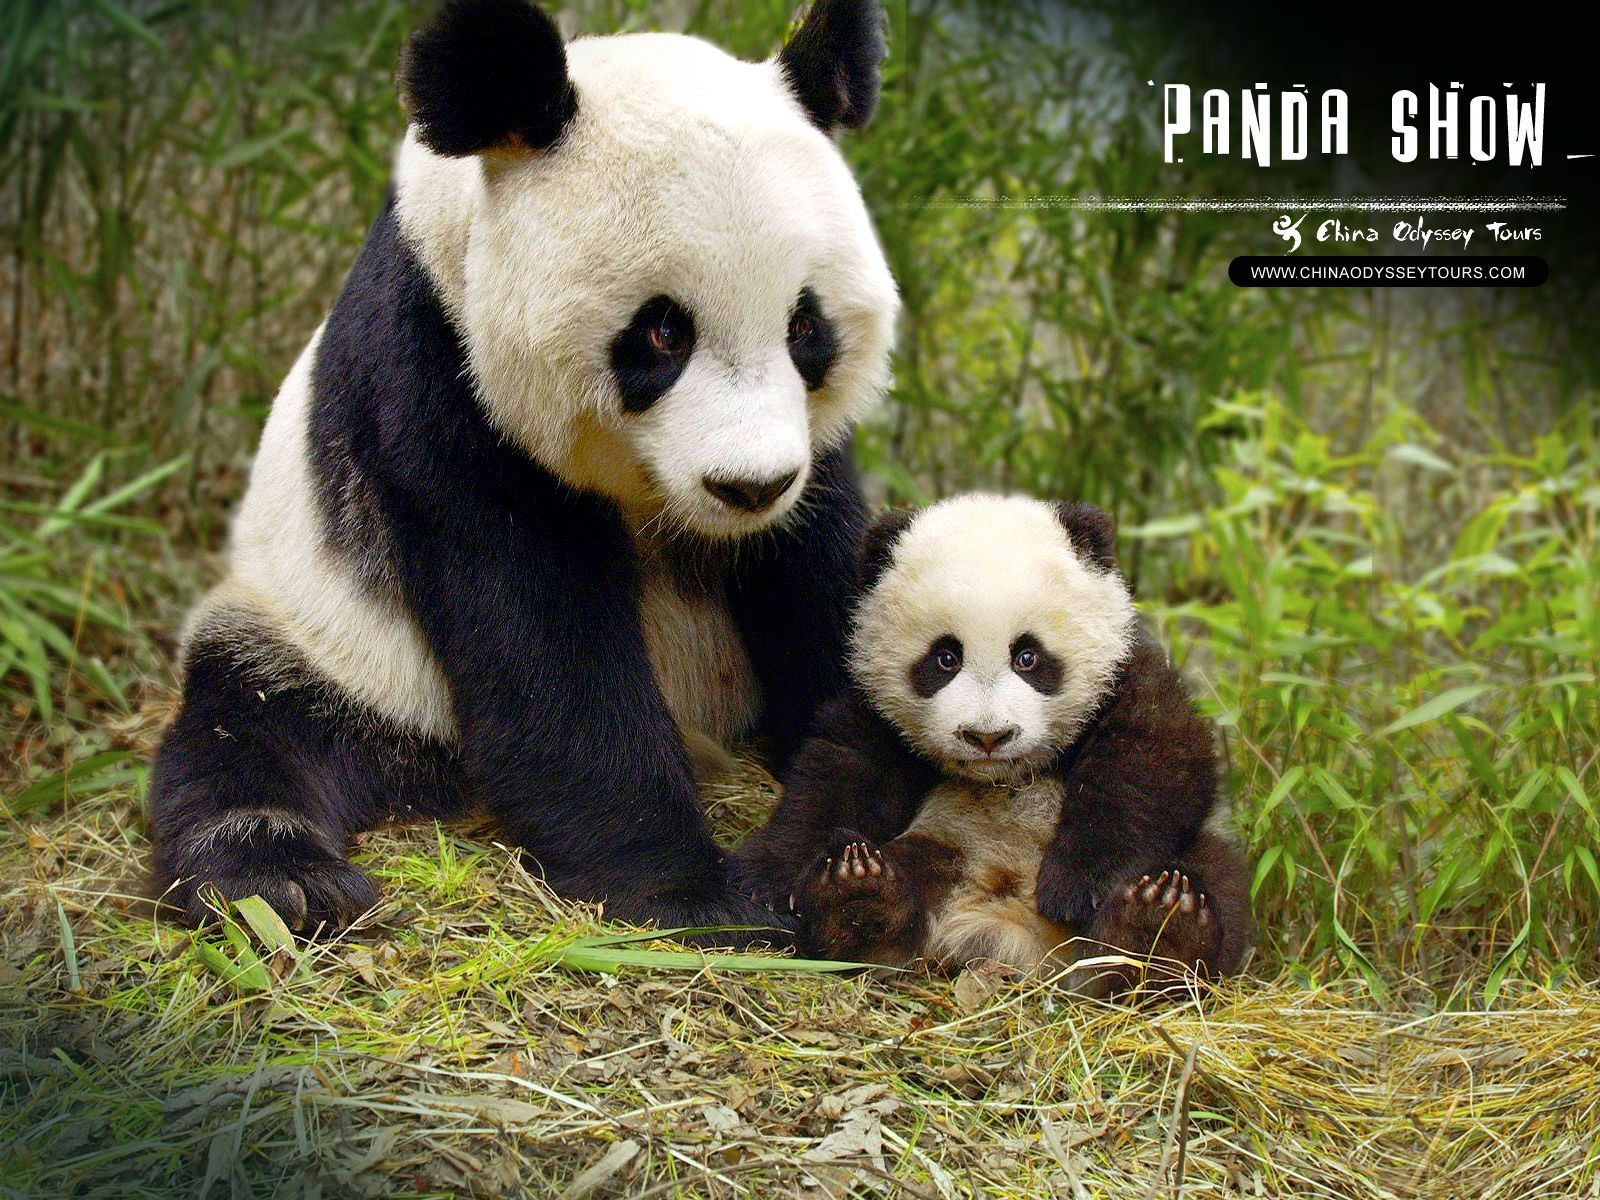 Pandas HD Wallpapers Android Apps on Google Play × Panda